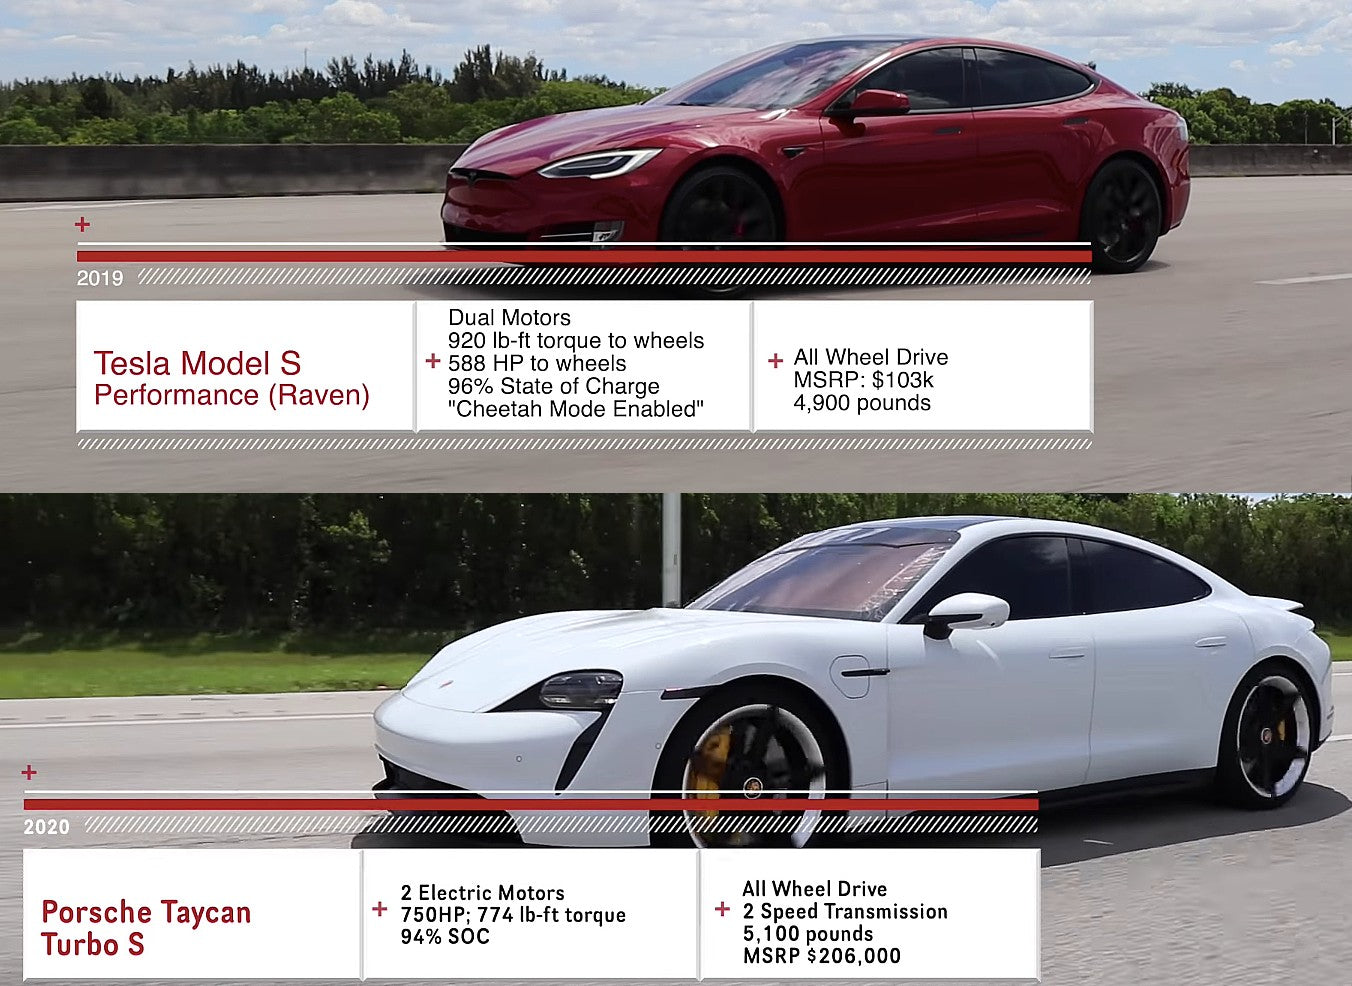 Tesla Model S Raven Finally Takes On Porsche Taycan Turbo S In A Fair